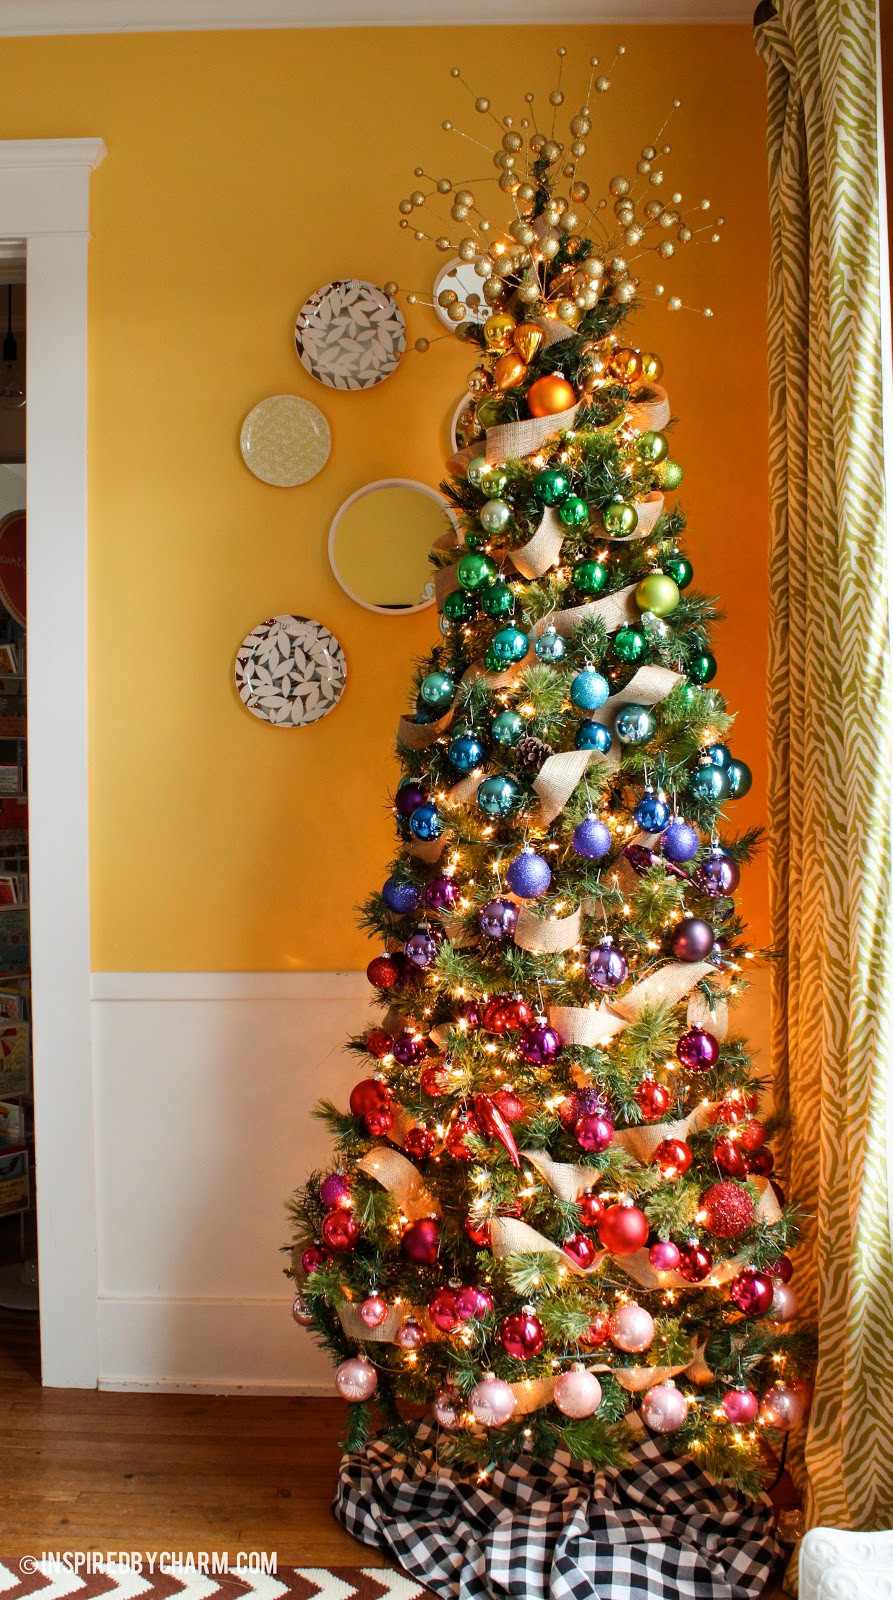 Christmas Tree Decorations Beautiful 30 Christmas Tree Ideas for An Unfor Table Holiday Of Superb 49 Pics Christmas Tree Decorations